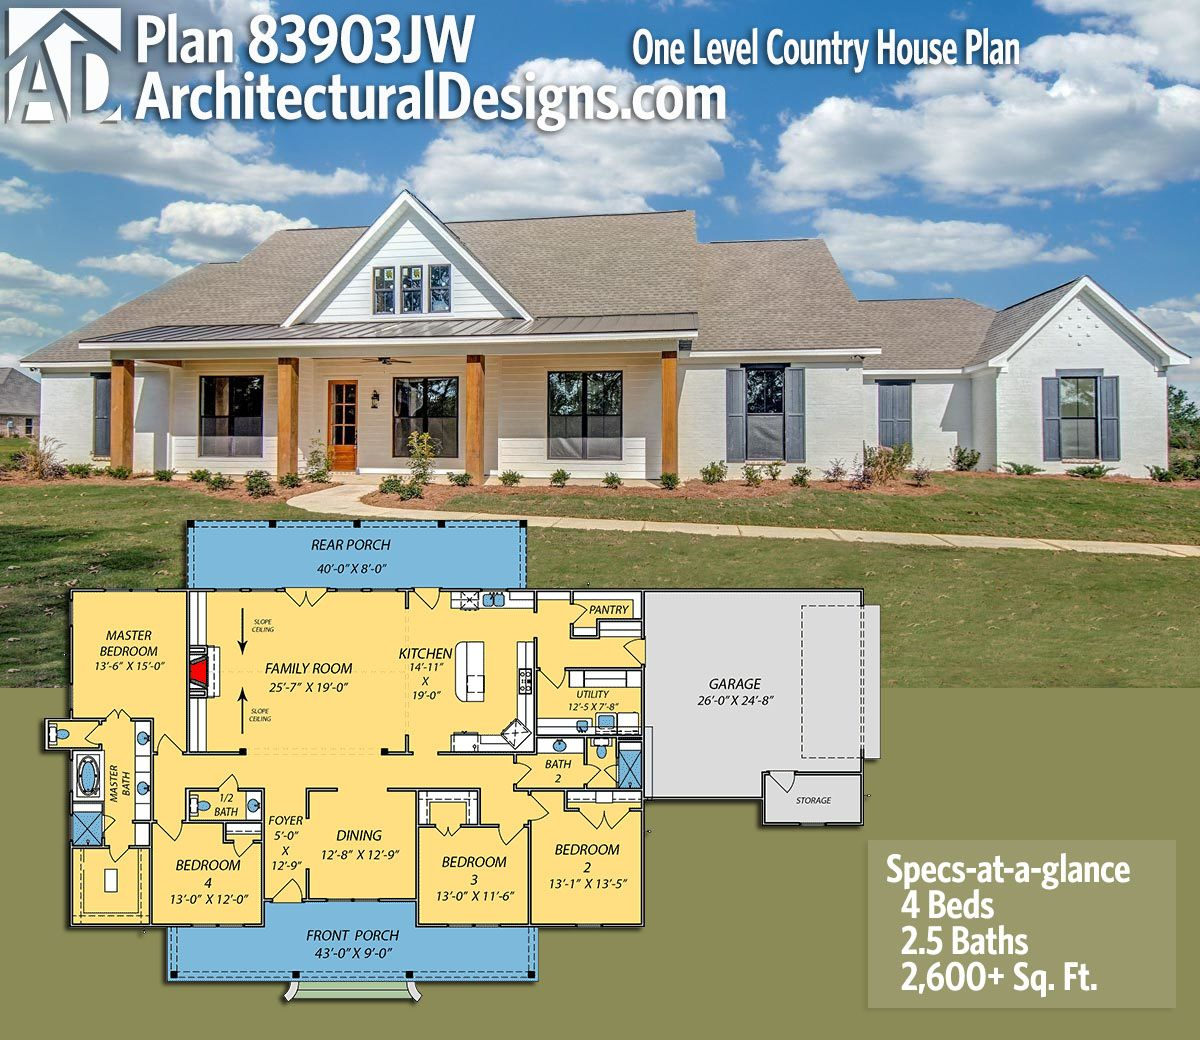 Plan 83903jw one level country house plan architectural for Single level home floor plans